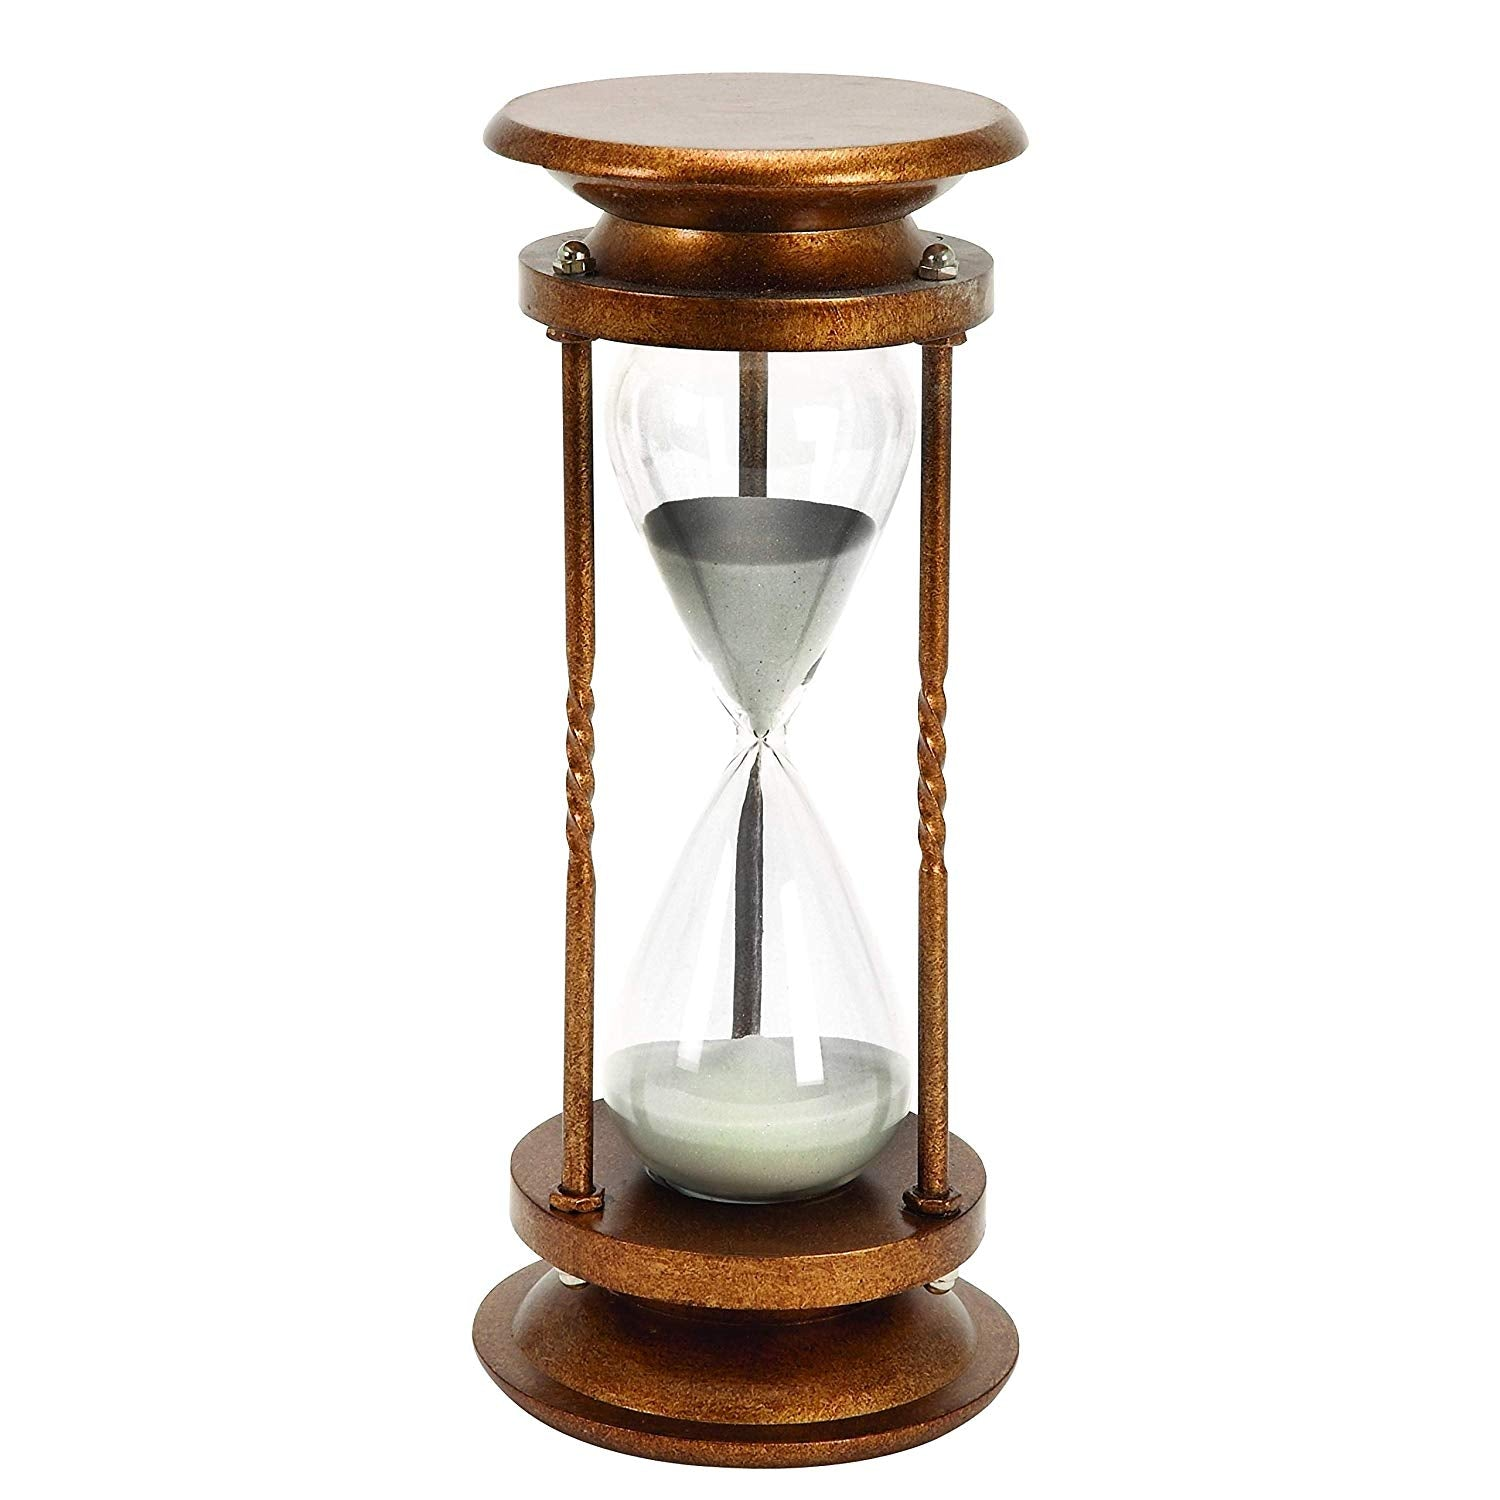 Vintage 60 Minute Hourglass Timer Sand White 1 Hour Glass Decor Modern Office Classic Timepiece Decorative Brown Round Base Wood